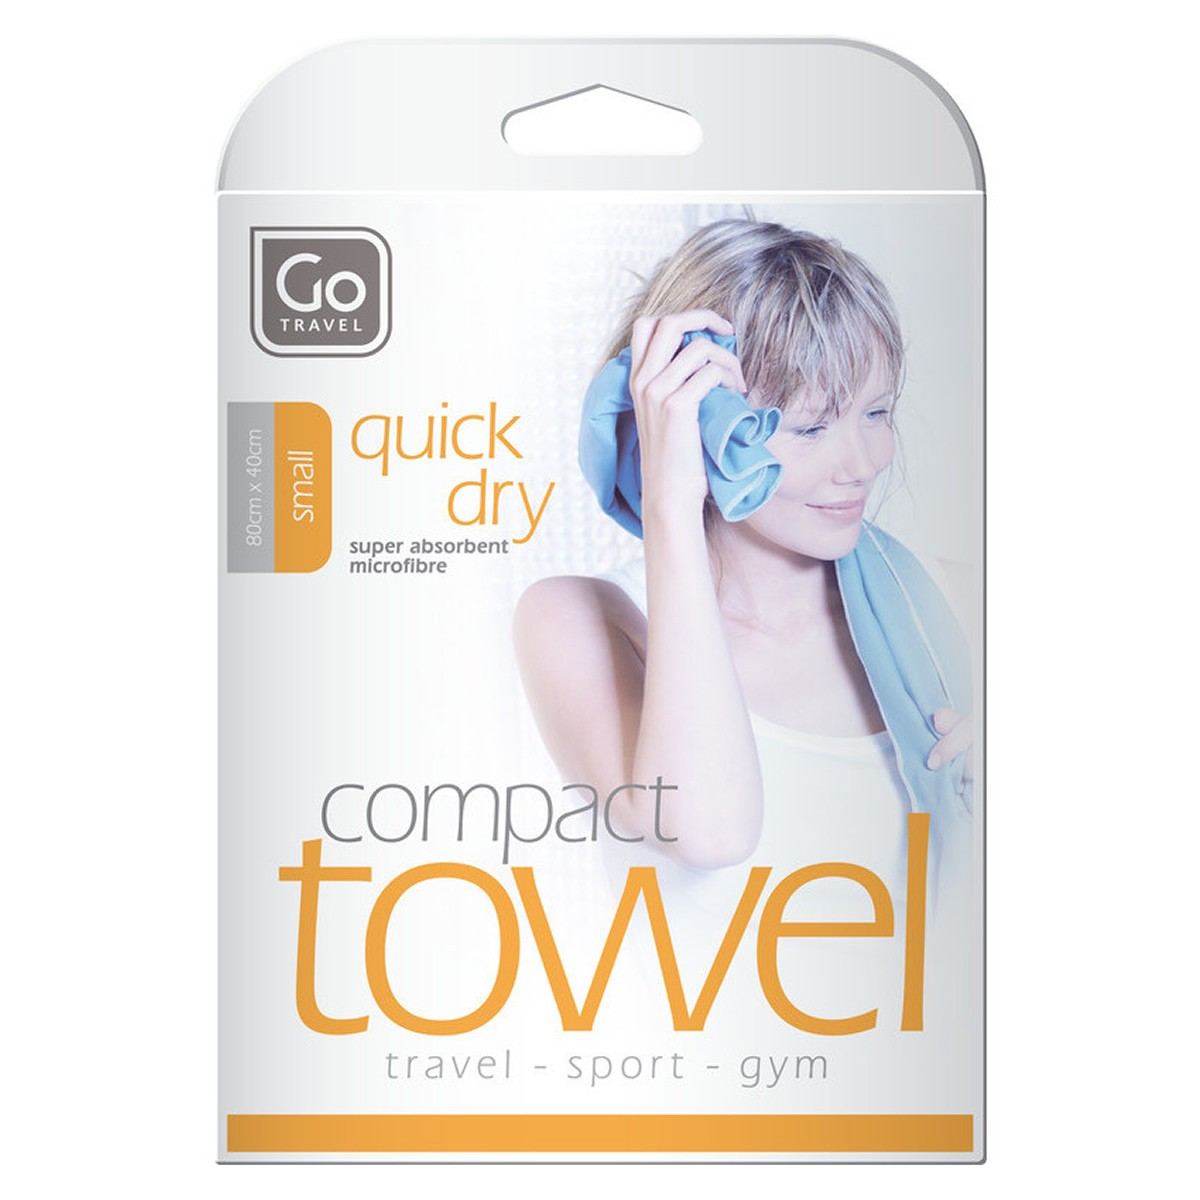 Go Travel Body Towel (Small)